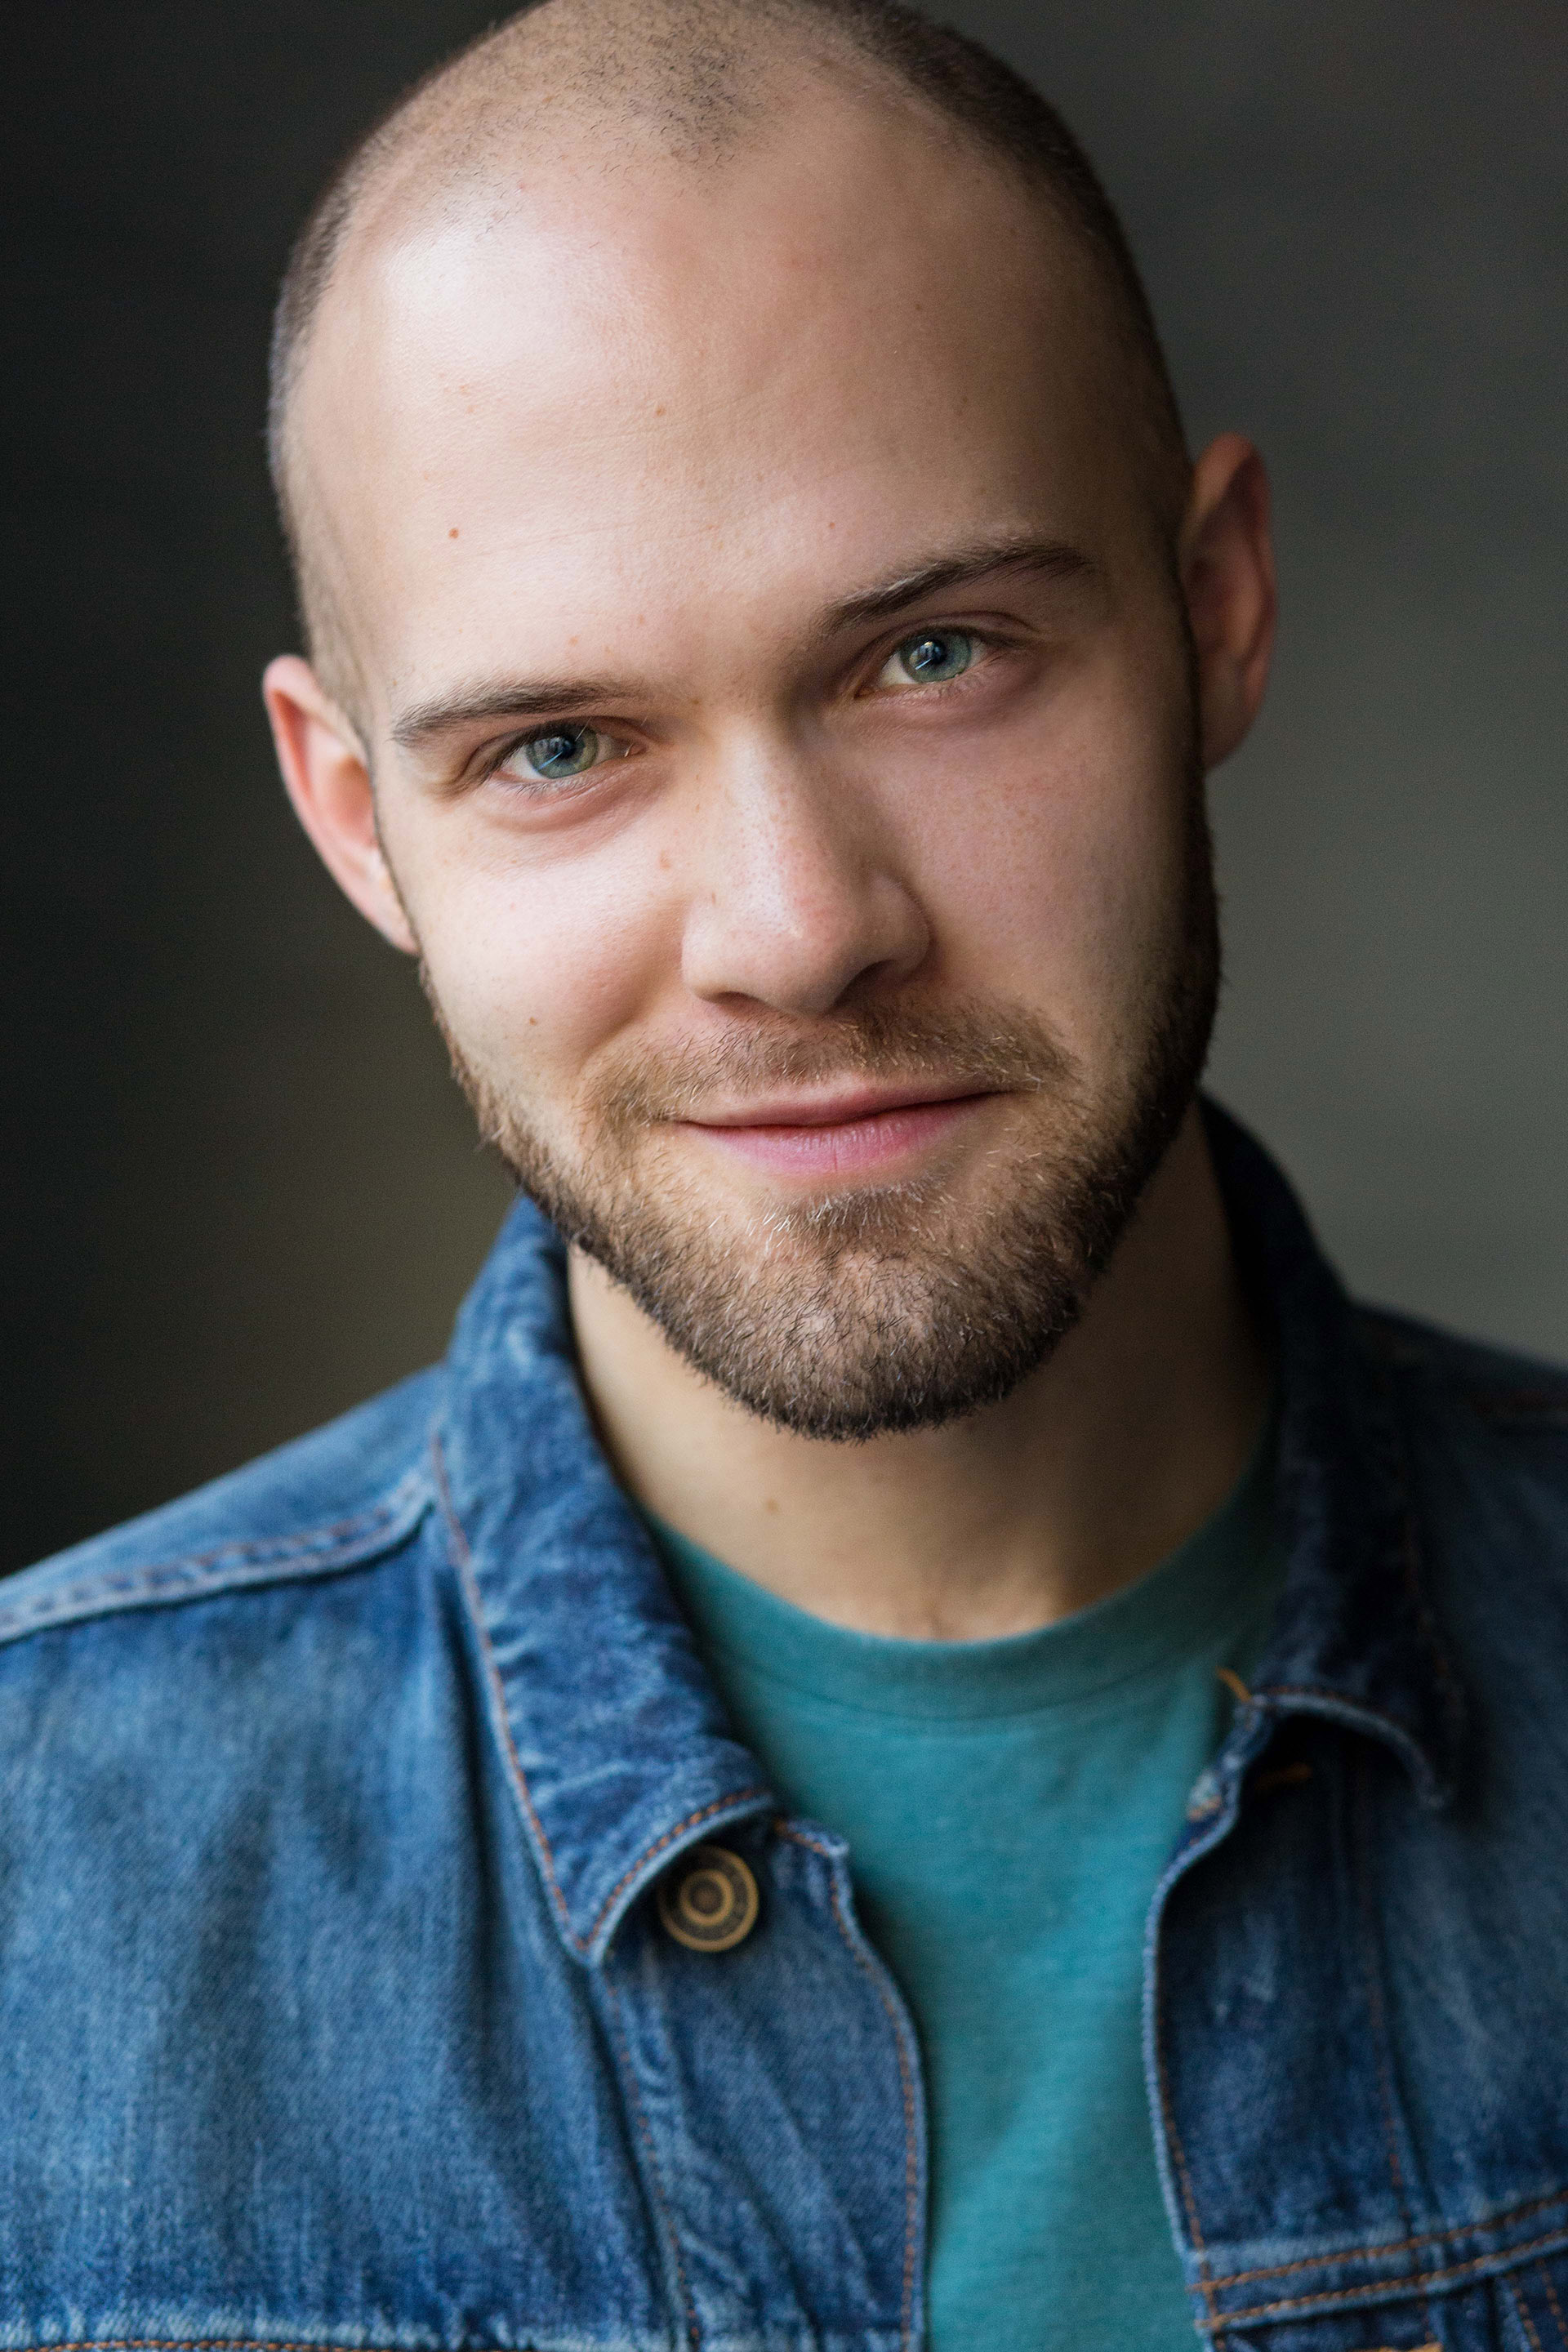 Thomas_Varga_Headshot_Full_Theatrical.jpg